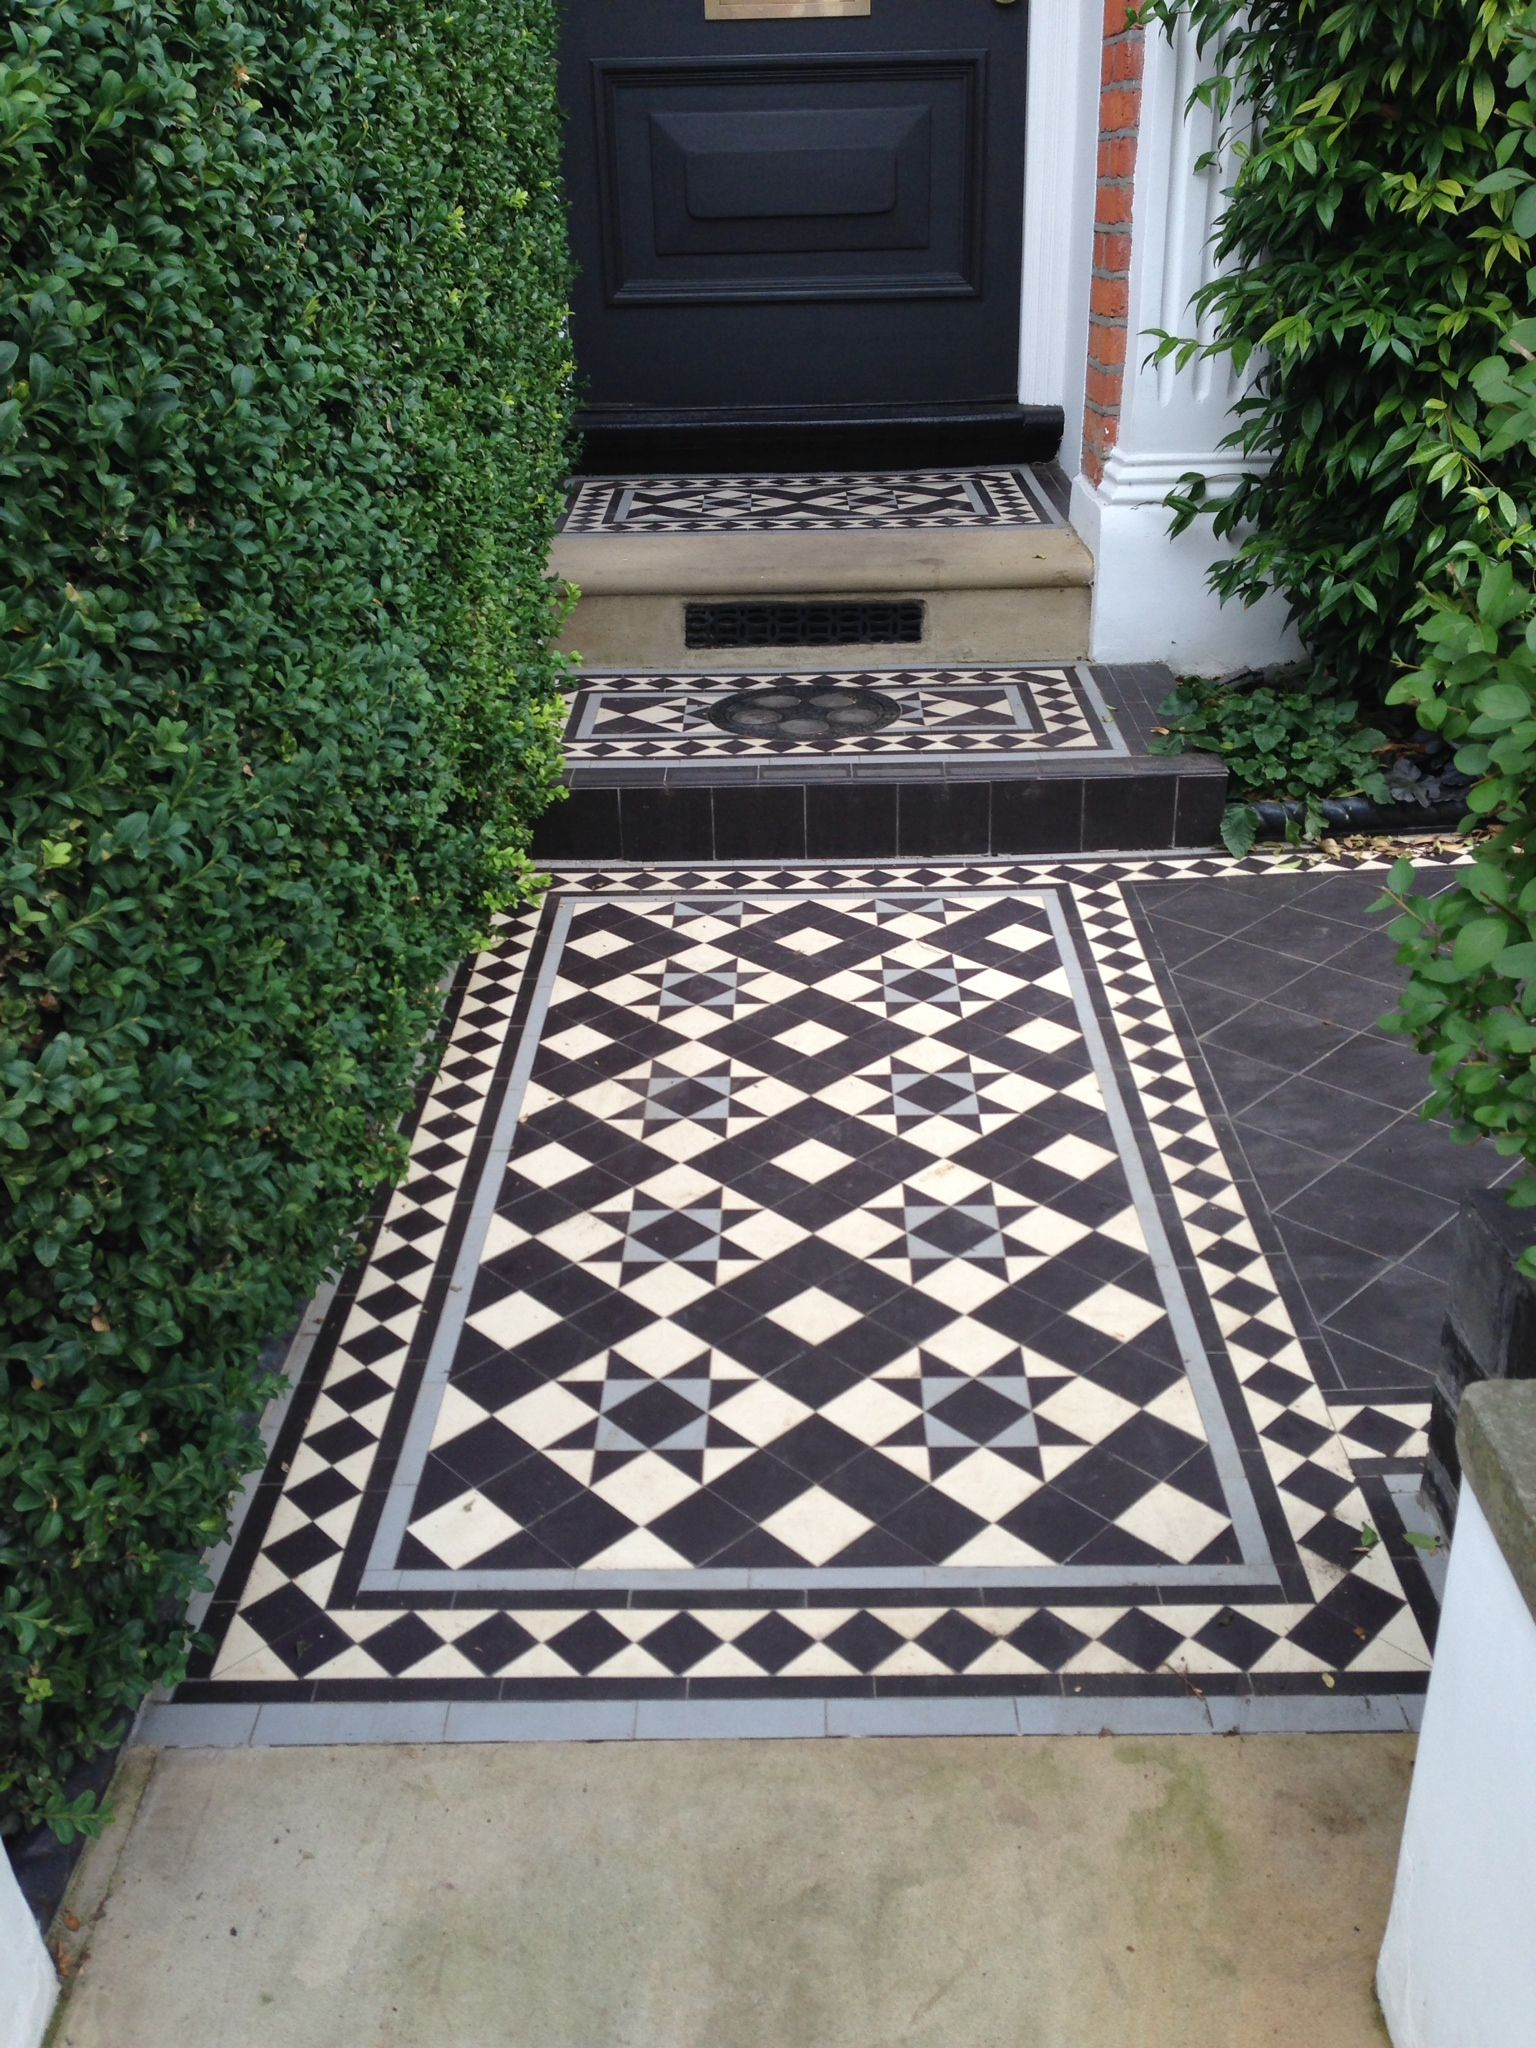 black and white tessellated front patio tiles in photos - google